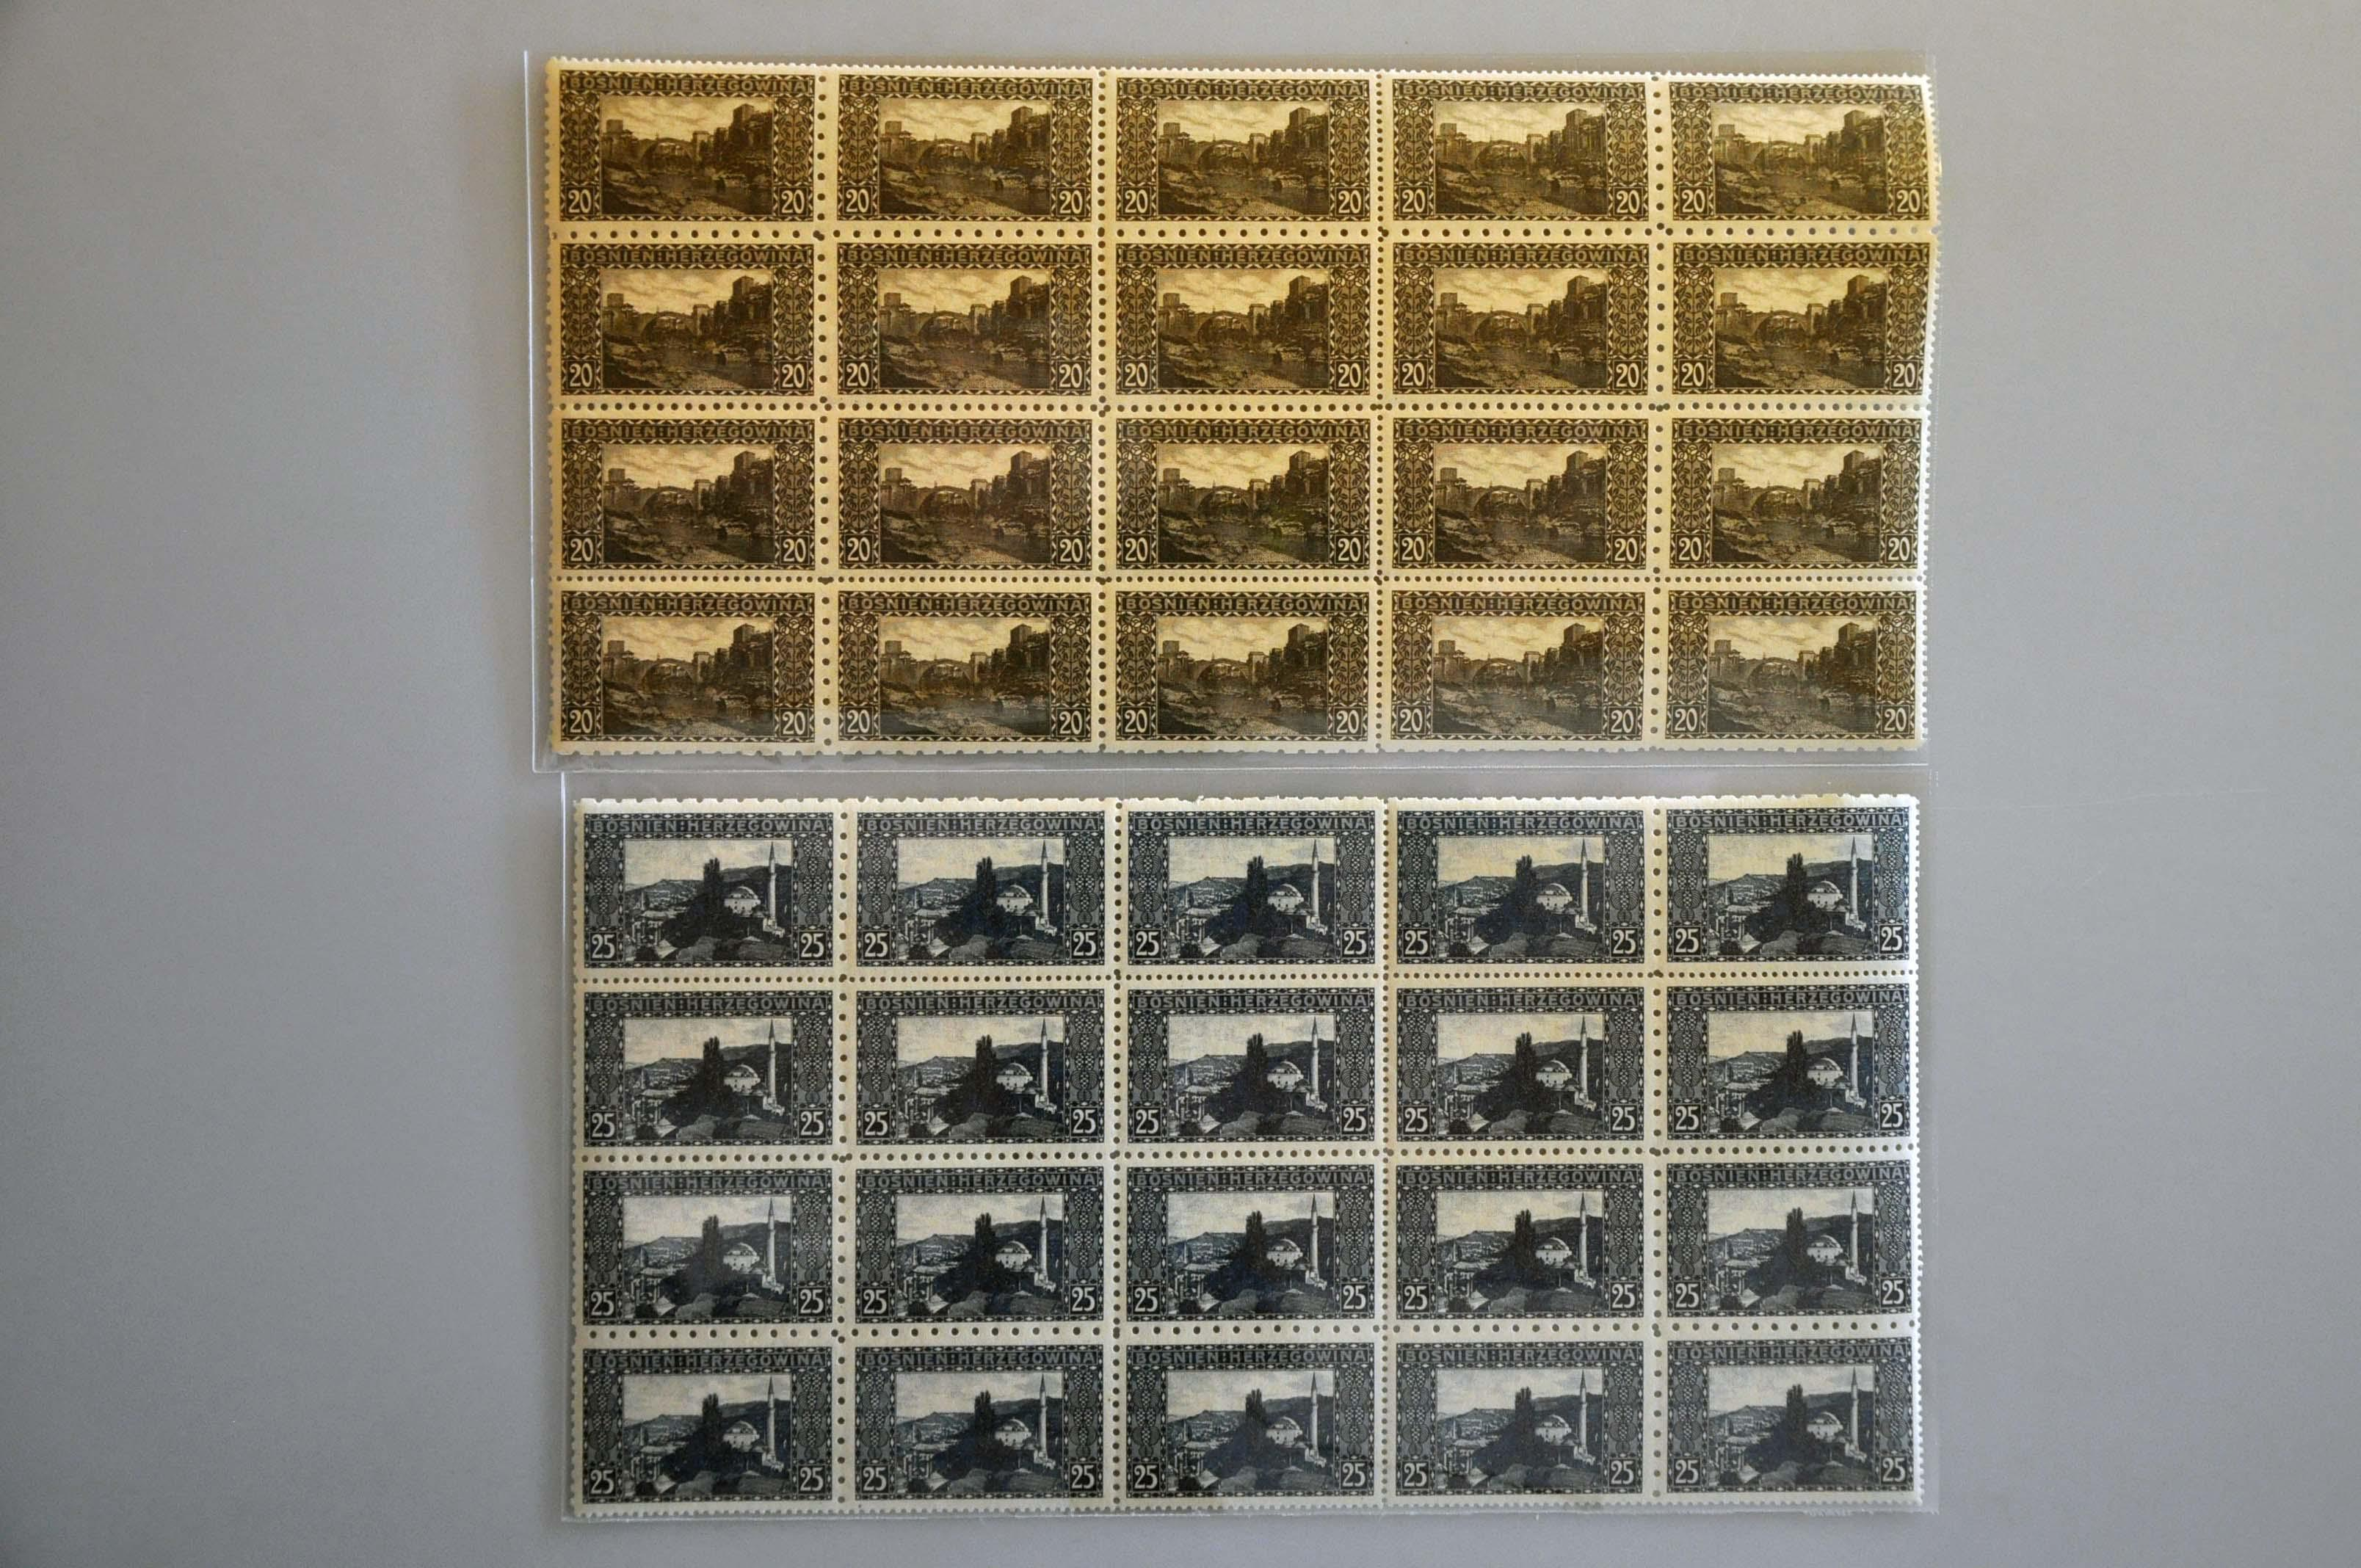 Lot 24 - Austria and former territories Bosnia and Herzegowina (Austrian) -  Corinphila Veilingen Auction 244 -Netherlands and former colonies, WW2 Postal History, Bosnia, German and British colonies, Egypt. - Day 1